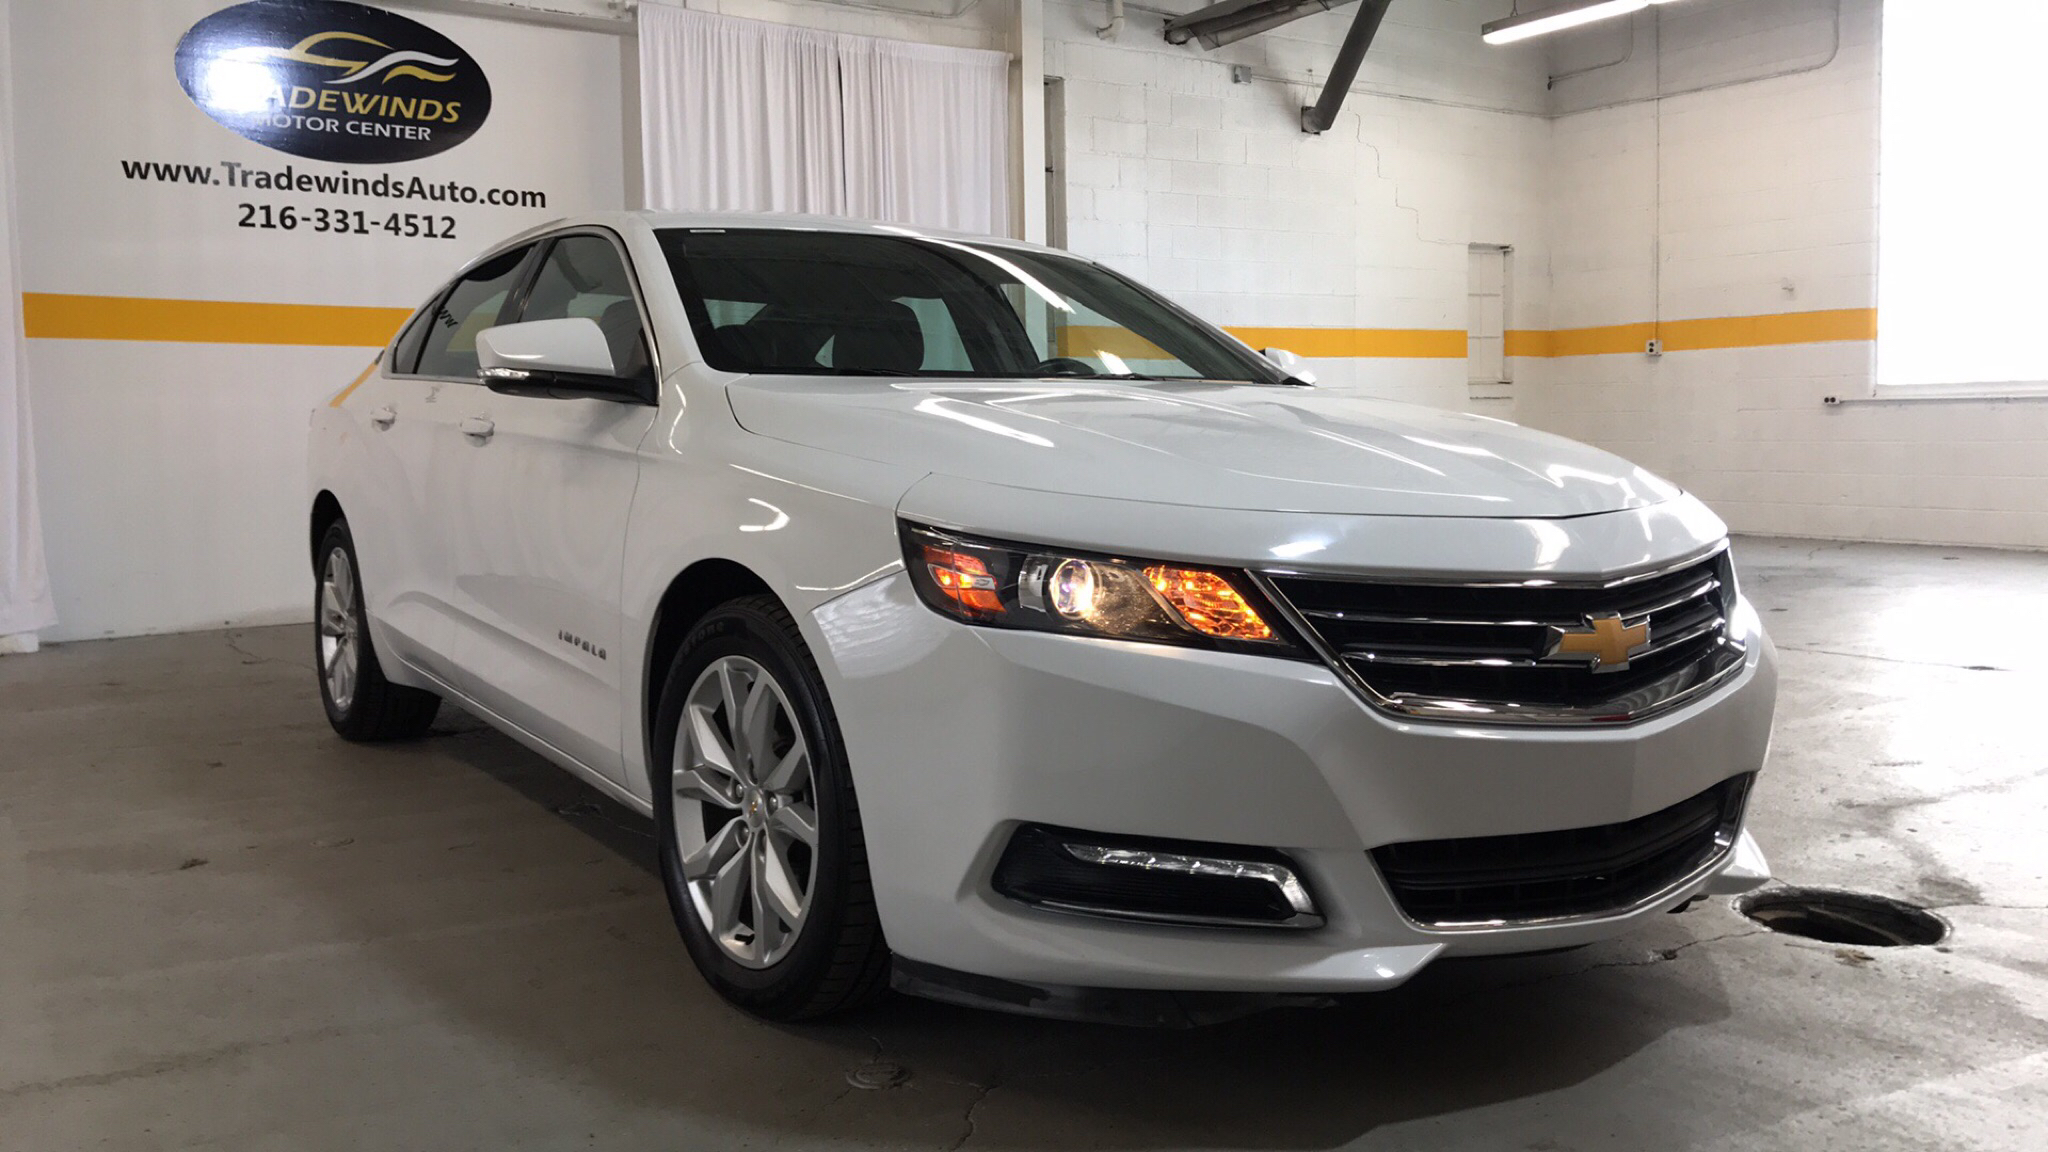 2018 CHEVROLET IMPALA LT for sale at Tradewinds Motor Center